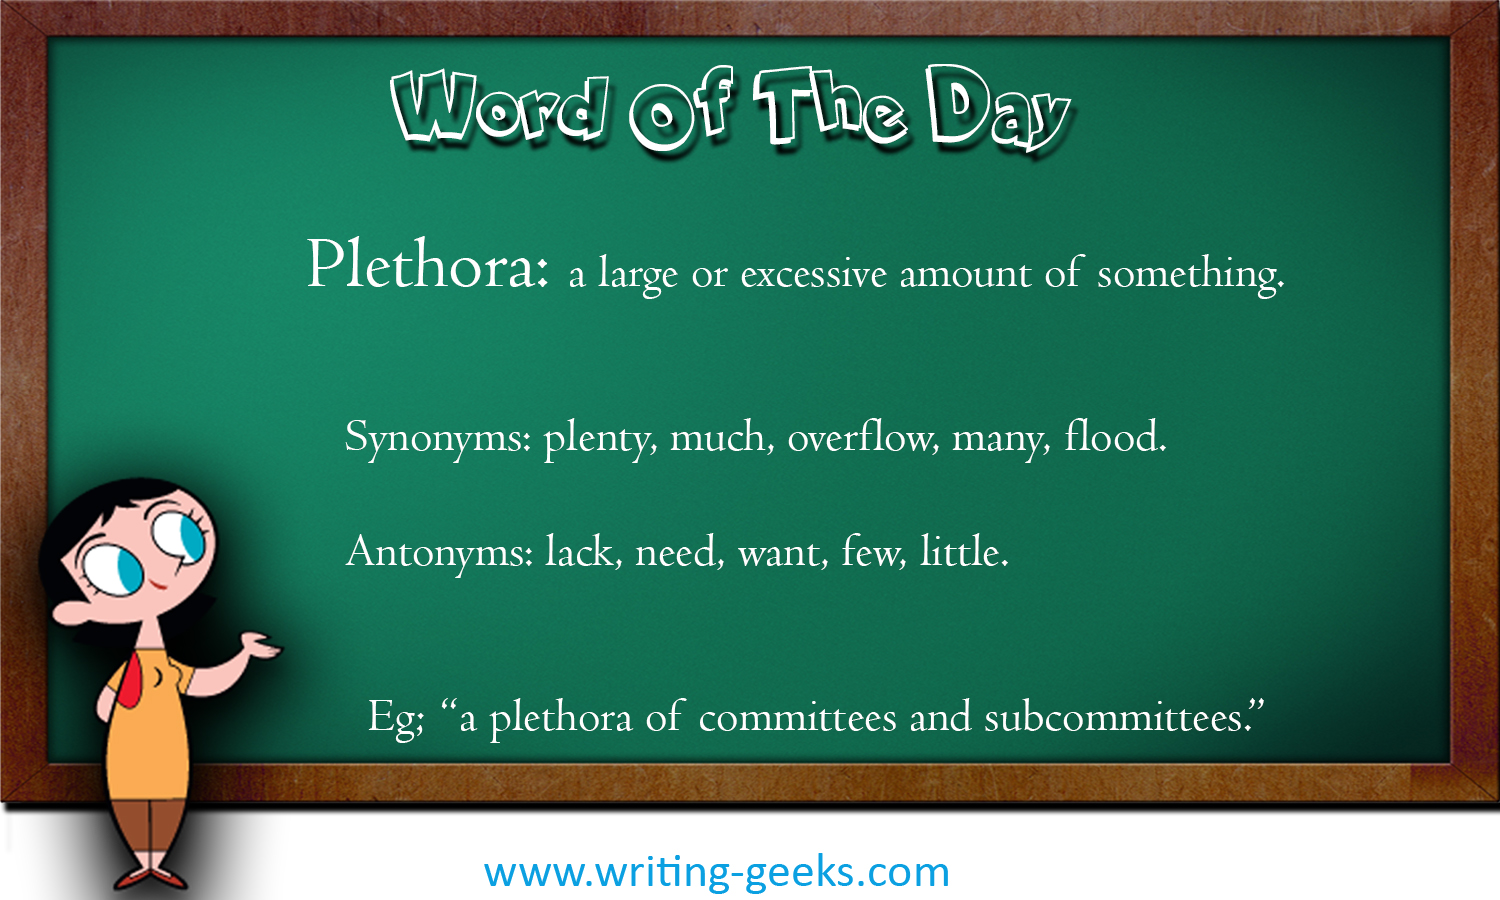 Plethora Writing Geeks Our thesaurus contains synonyms of plethora in 15 different contexts. plethora writing geeks